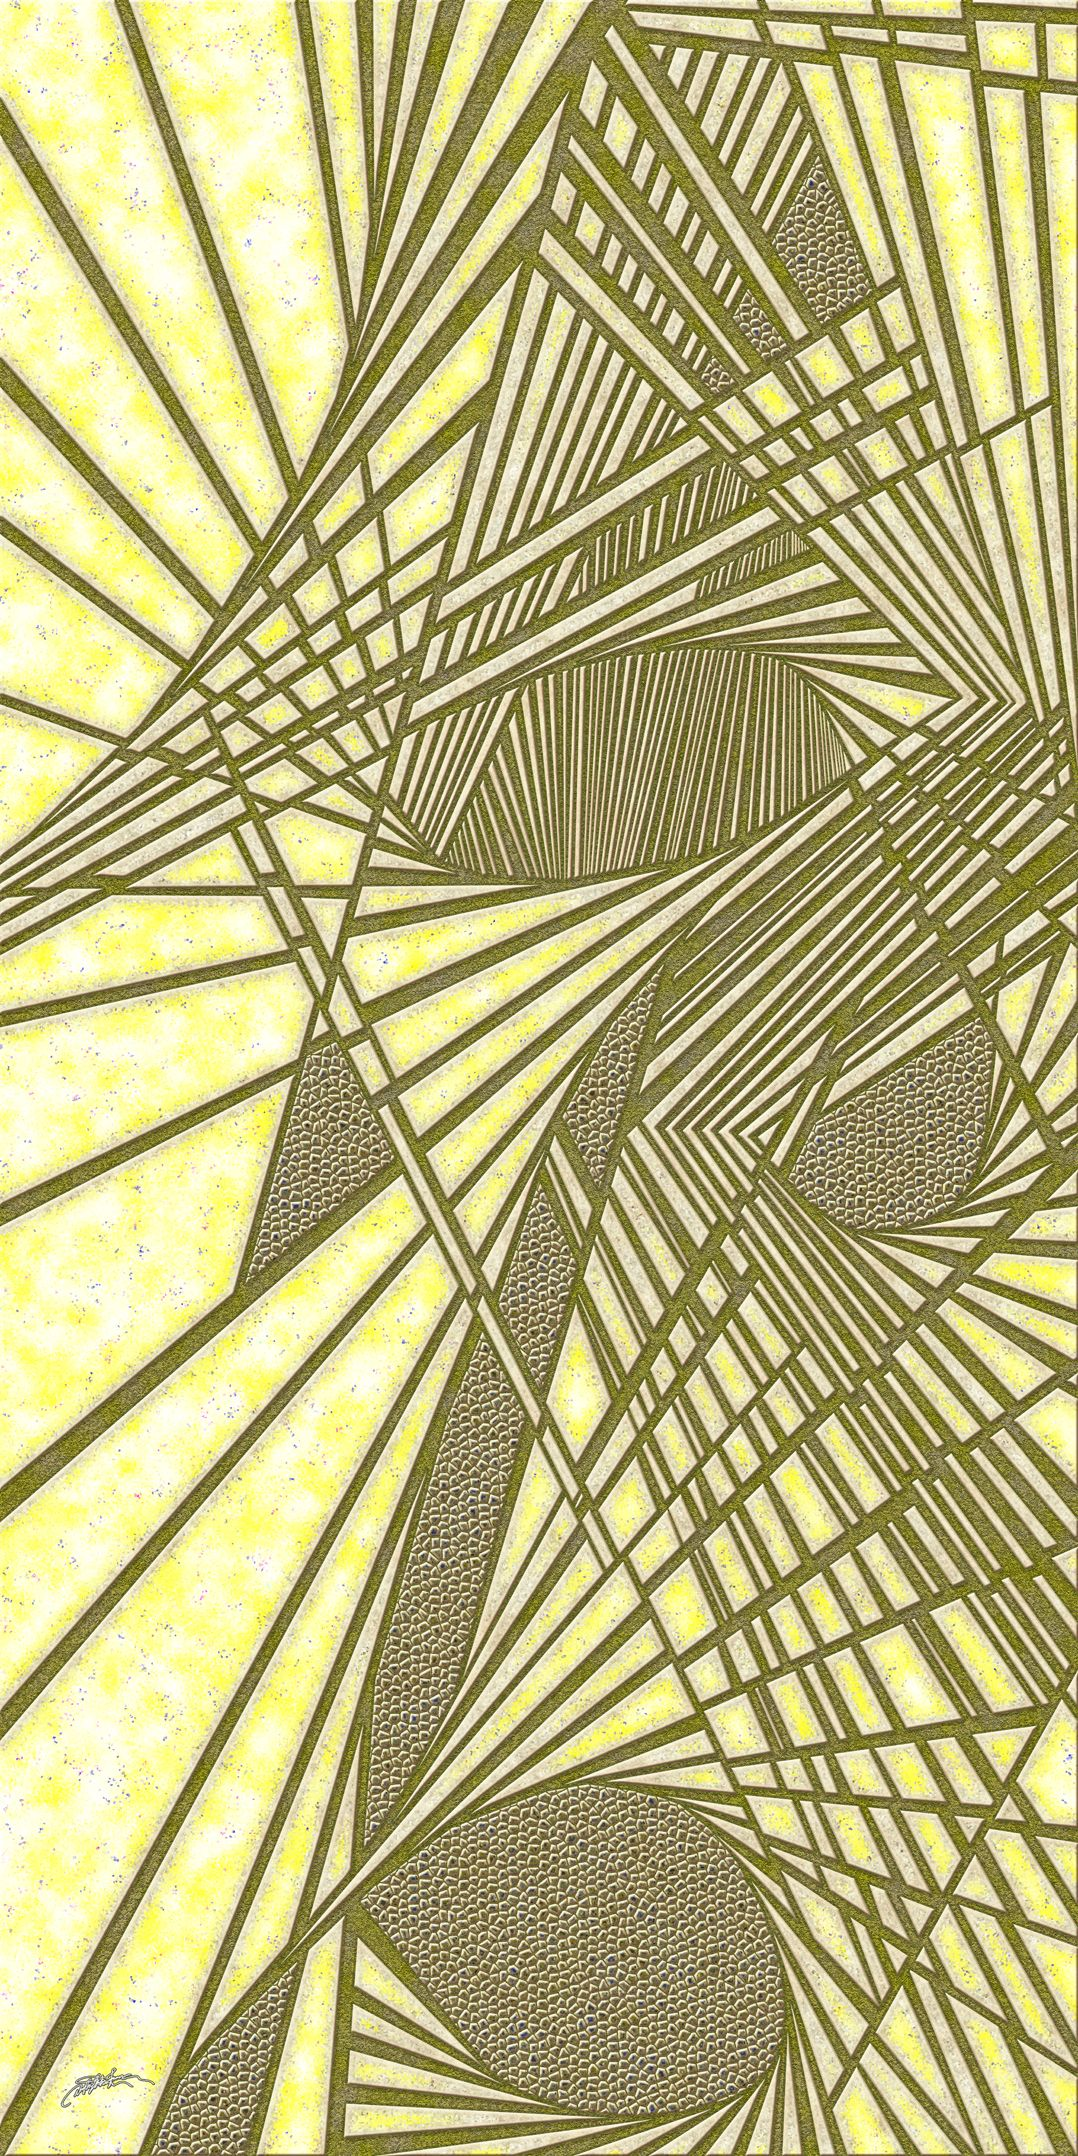 amber house - Optical Obsession cast in Virtual Shattered Glass by Douglas Christian Larsen, homage and tribute to authors Kelly Moore, Larkin Reed, and Tucker Reed - http://www.imagekind.com/amber-house_art?imid=9c0313c9-2db3-4b9a-898c-98e0a18d92b6